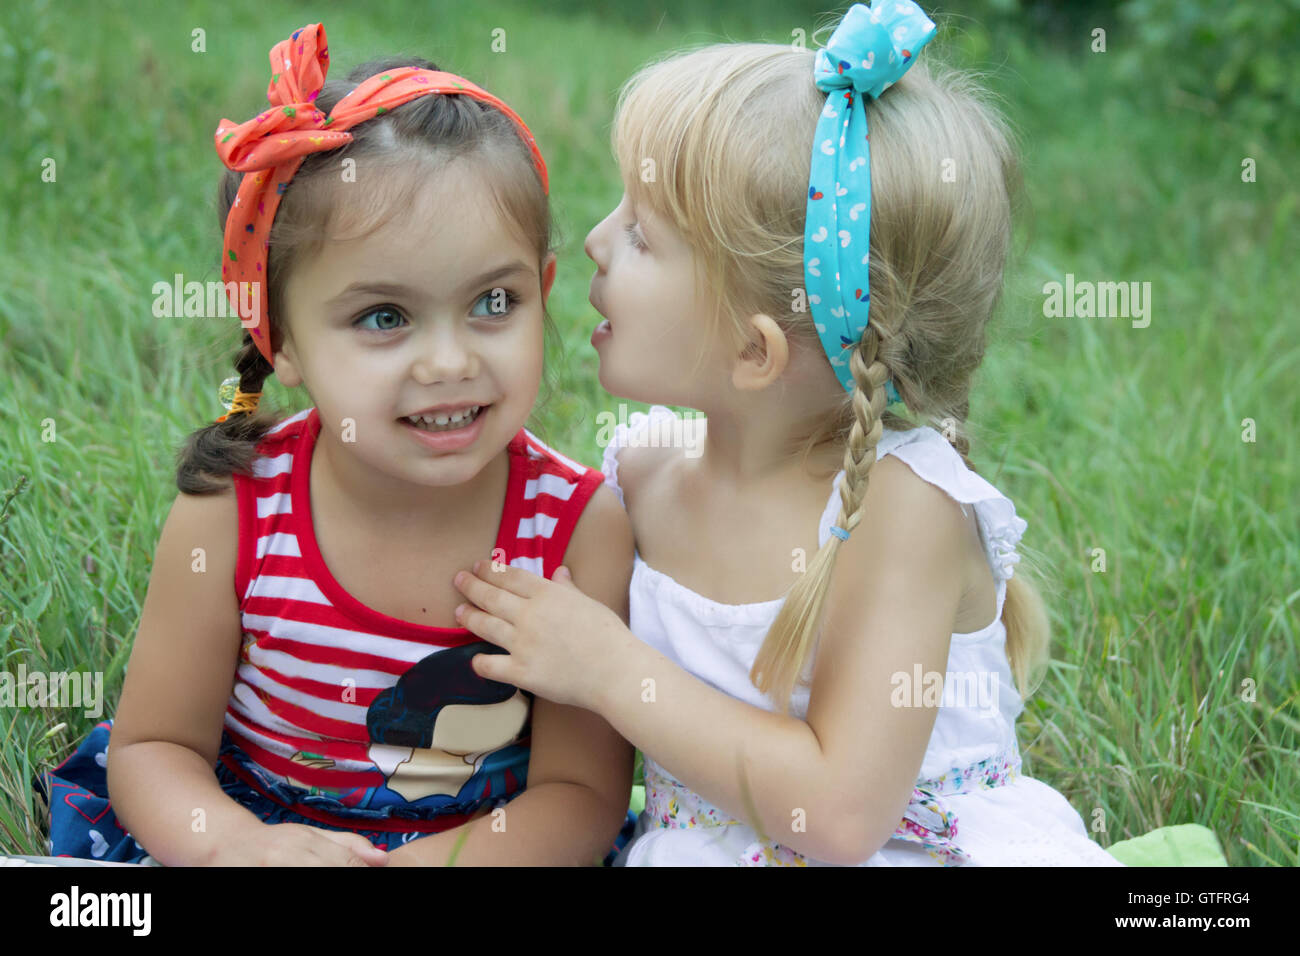 Two girls sharing secrets - Stock Image